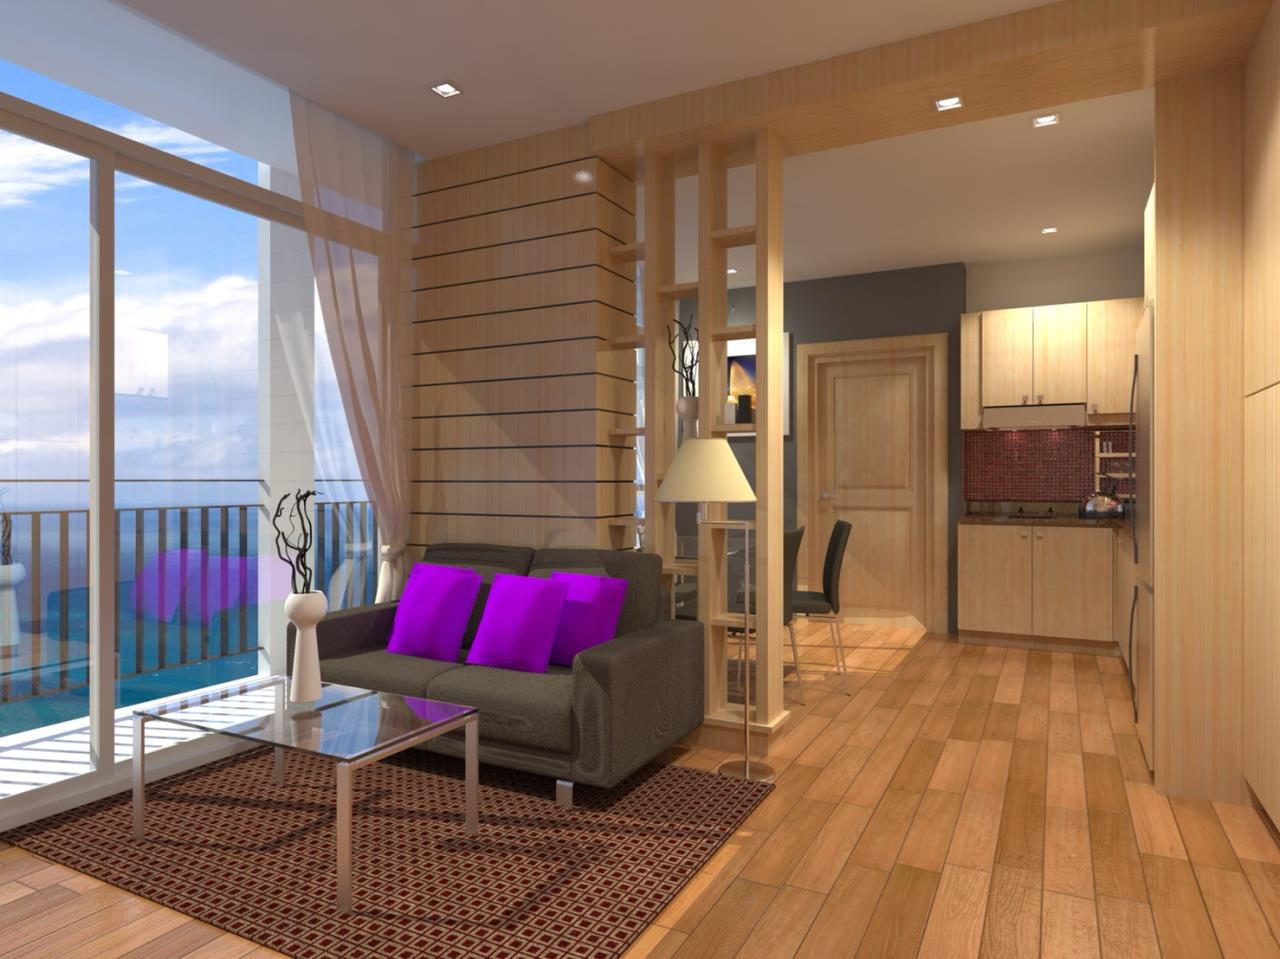 Signature Realty ( Thailand ) Co Ltd Agency's Furnished 1bedroom 46 sq.m condo with jacuzzi floor 21-31 at The Grand Jomtein Beach Pattaya 5